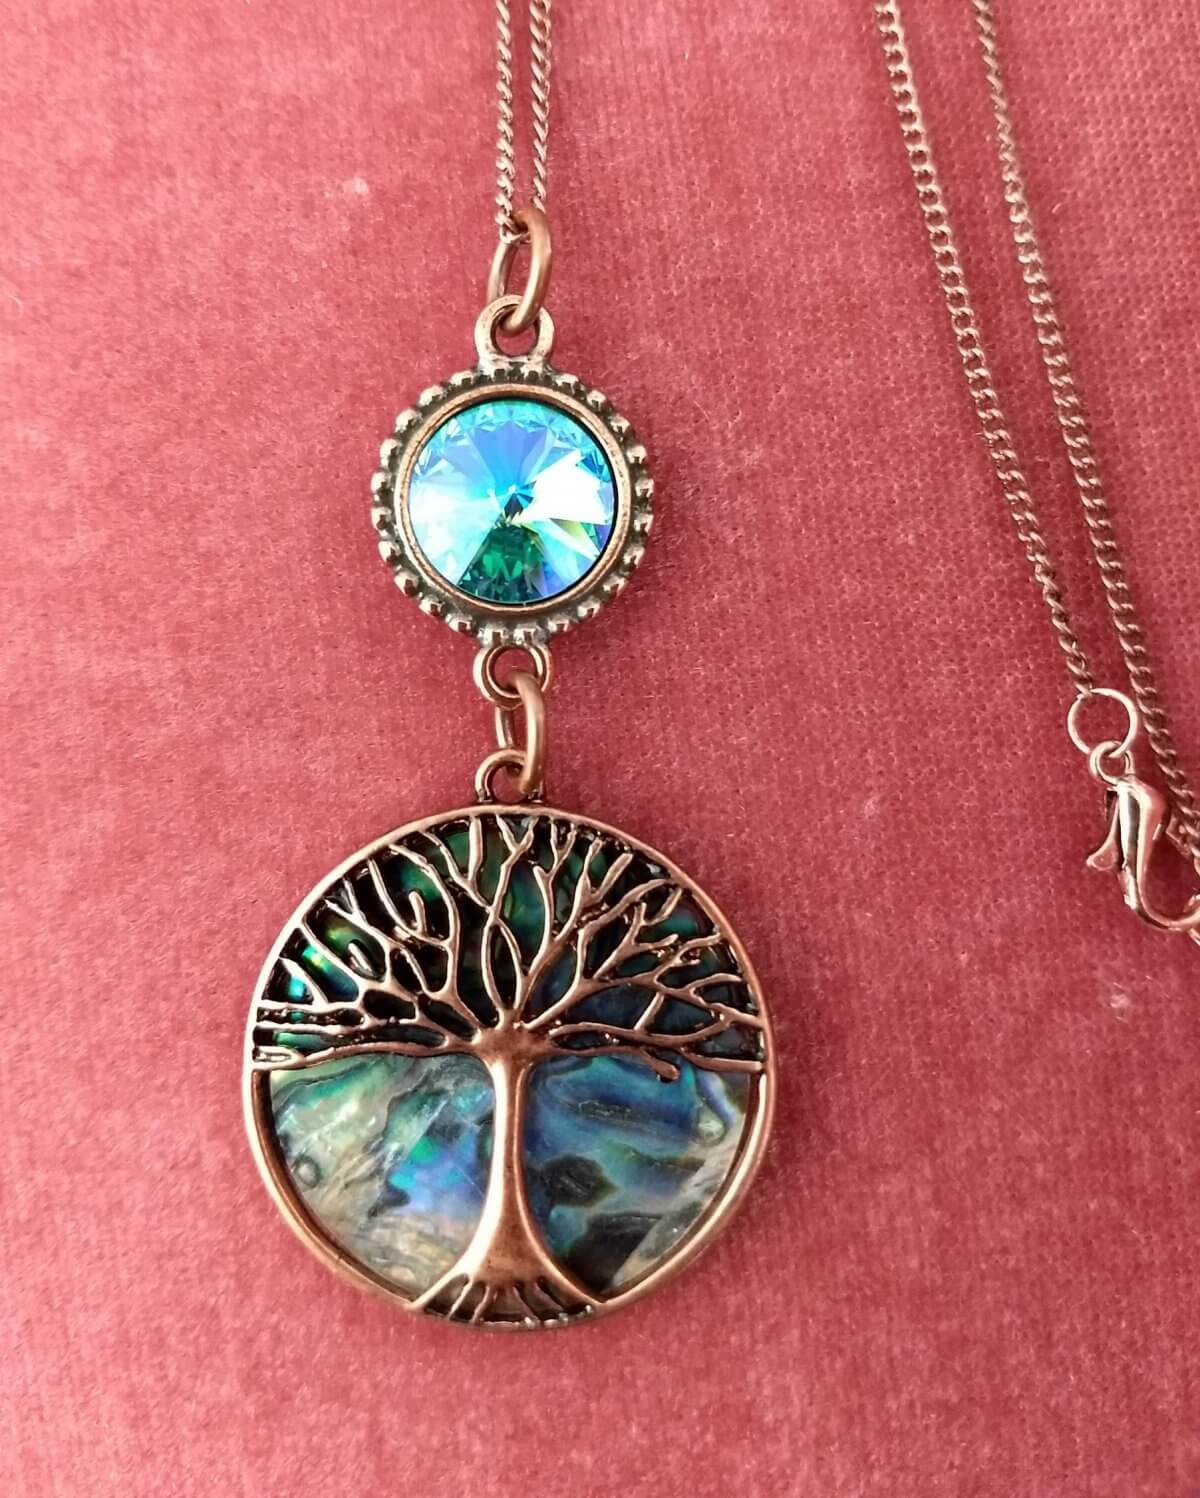 https://lorirae.com/wp-content/uploads/2020/05/Abalone-tree-of-Life-copper-oxidized-1-scaled-e1588771808553.jpg